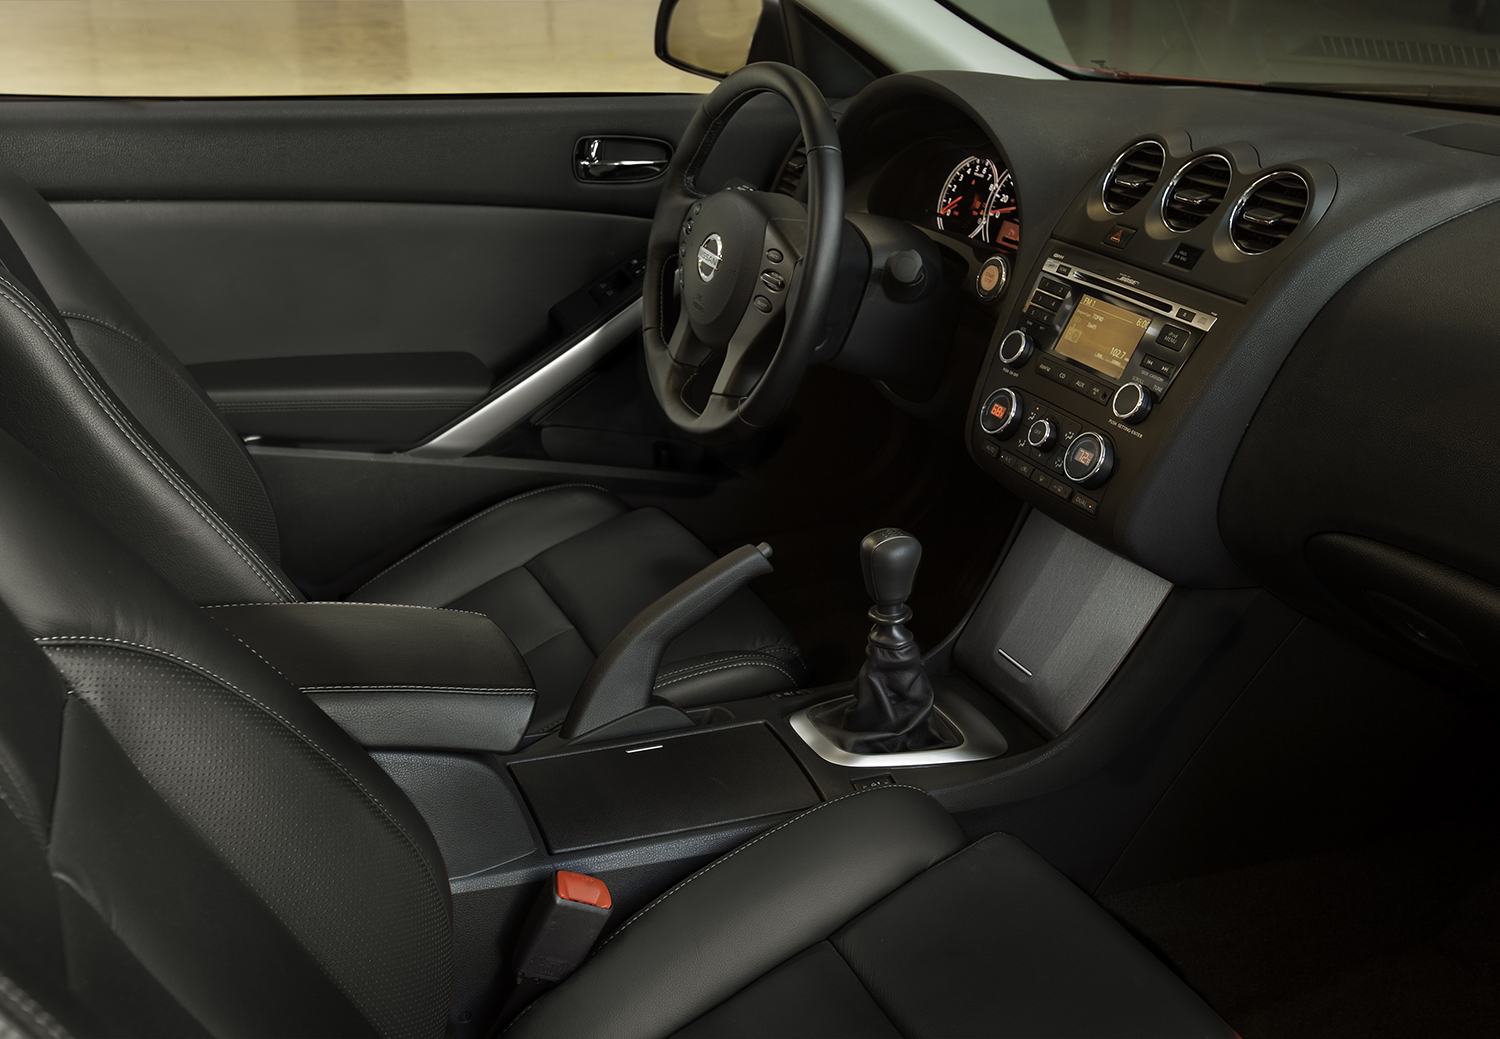 2013 Nissan Altima Coupe Dashboard